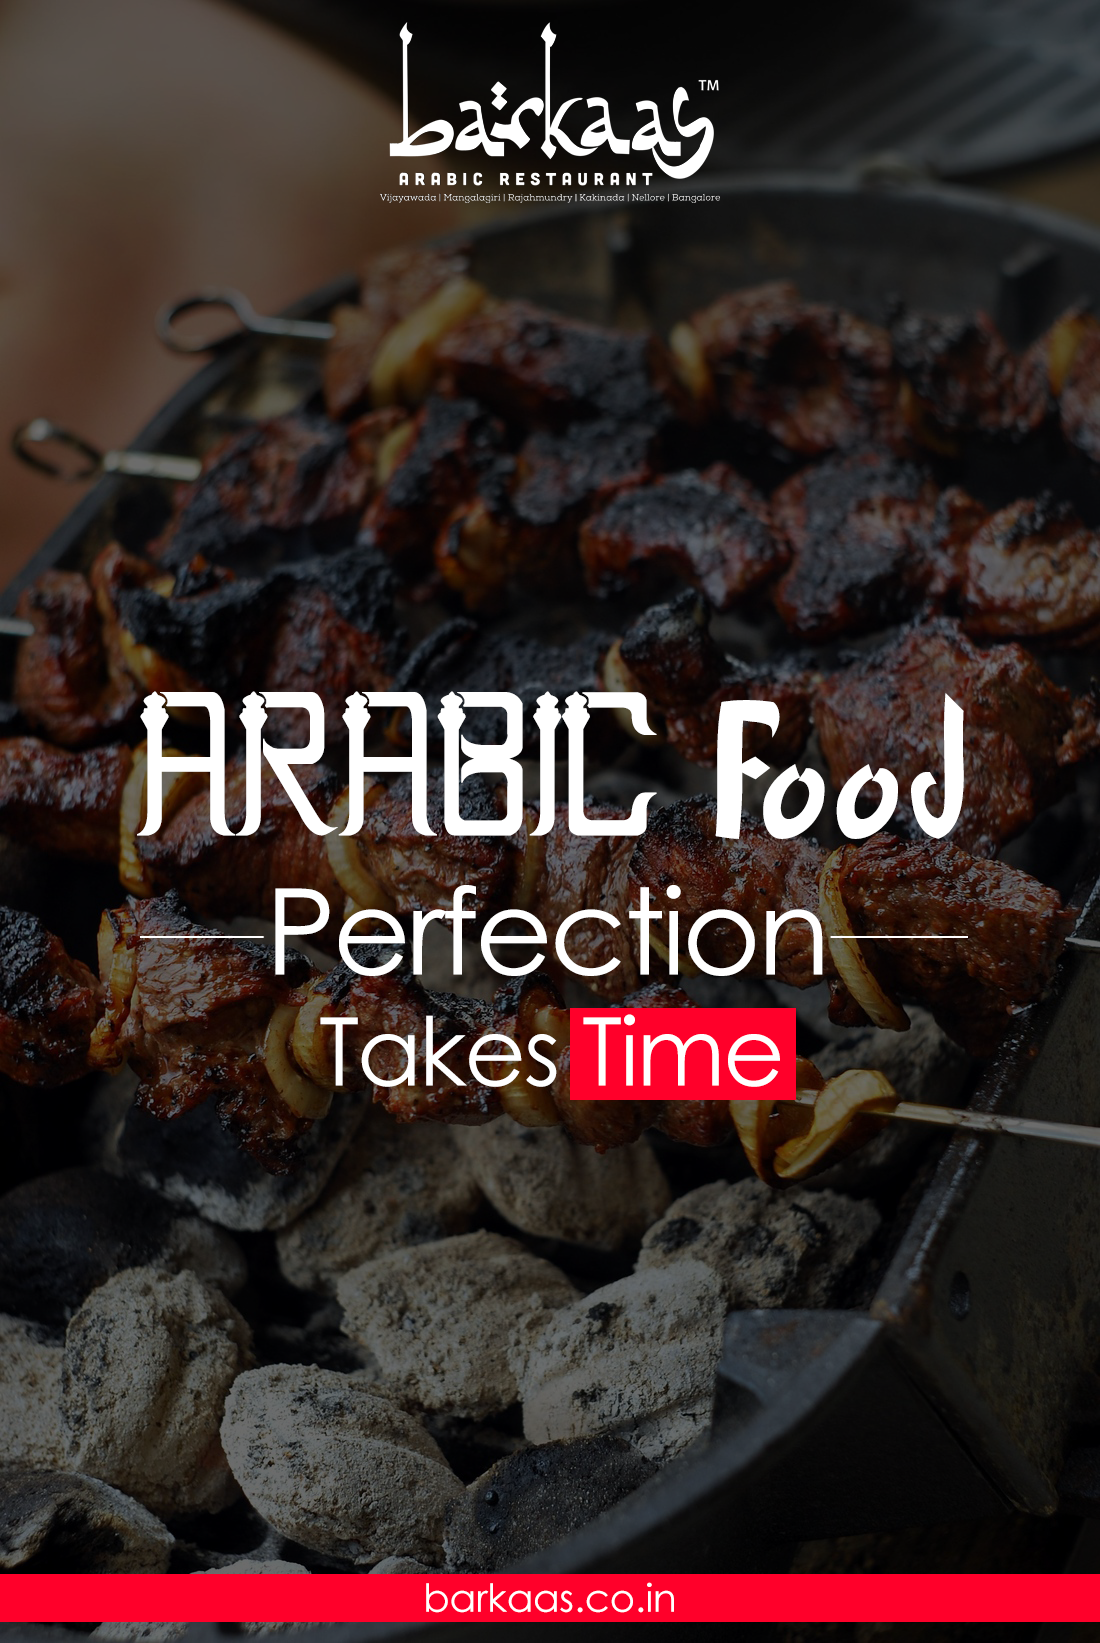 Image for Arabic restaurant in bangalore